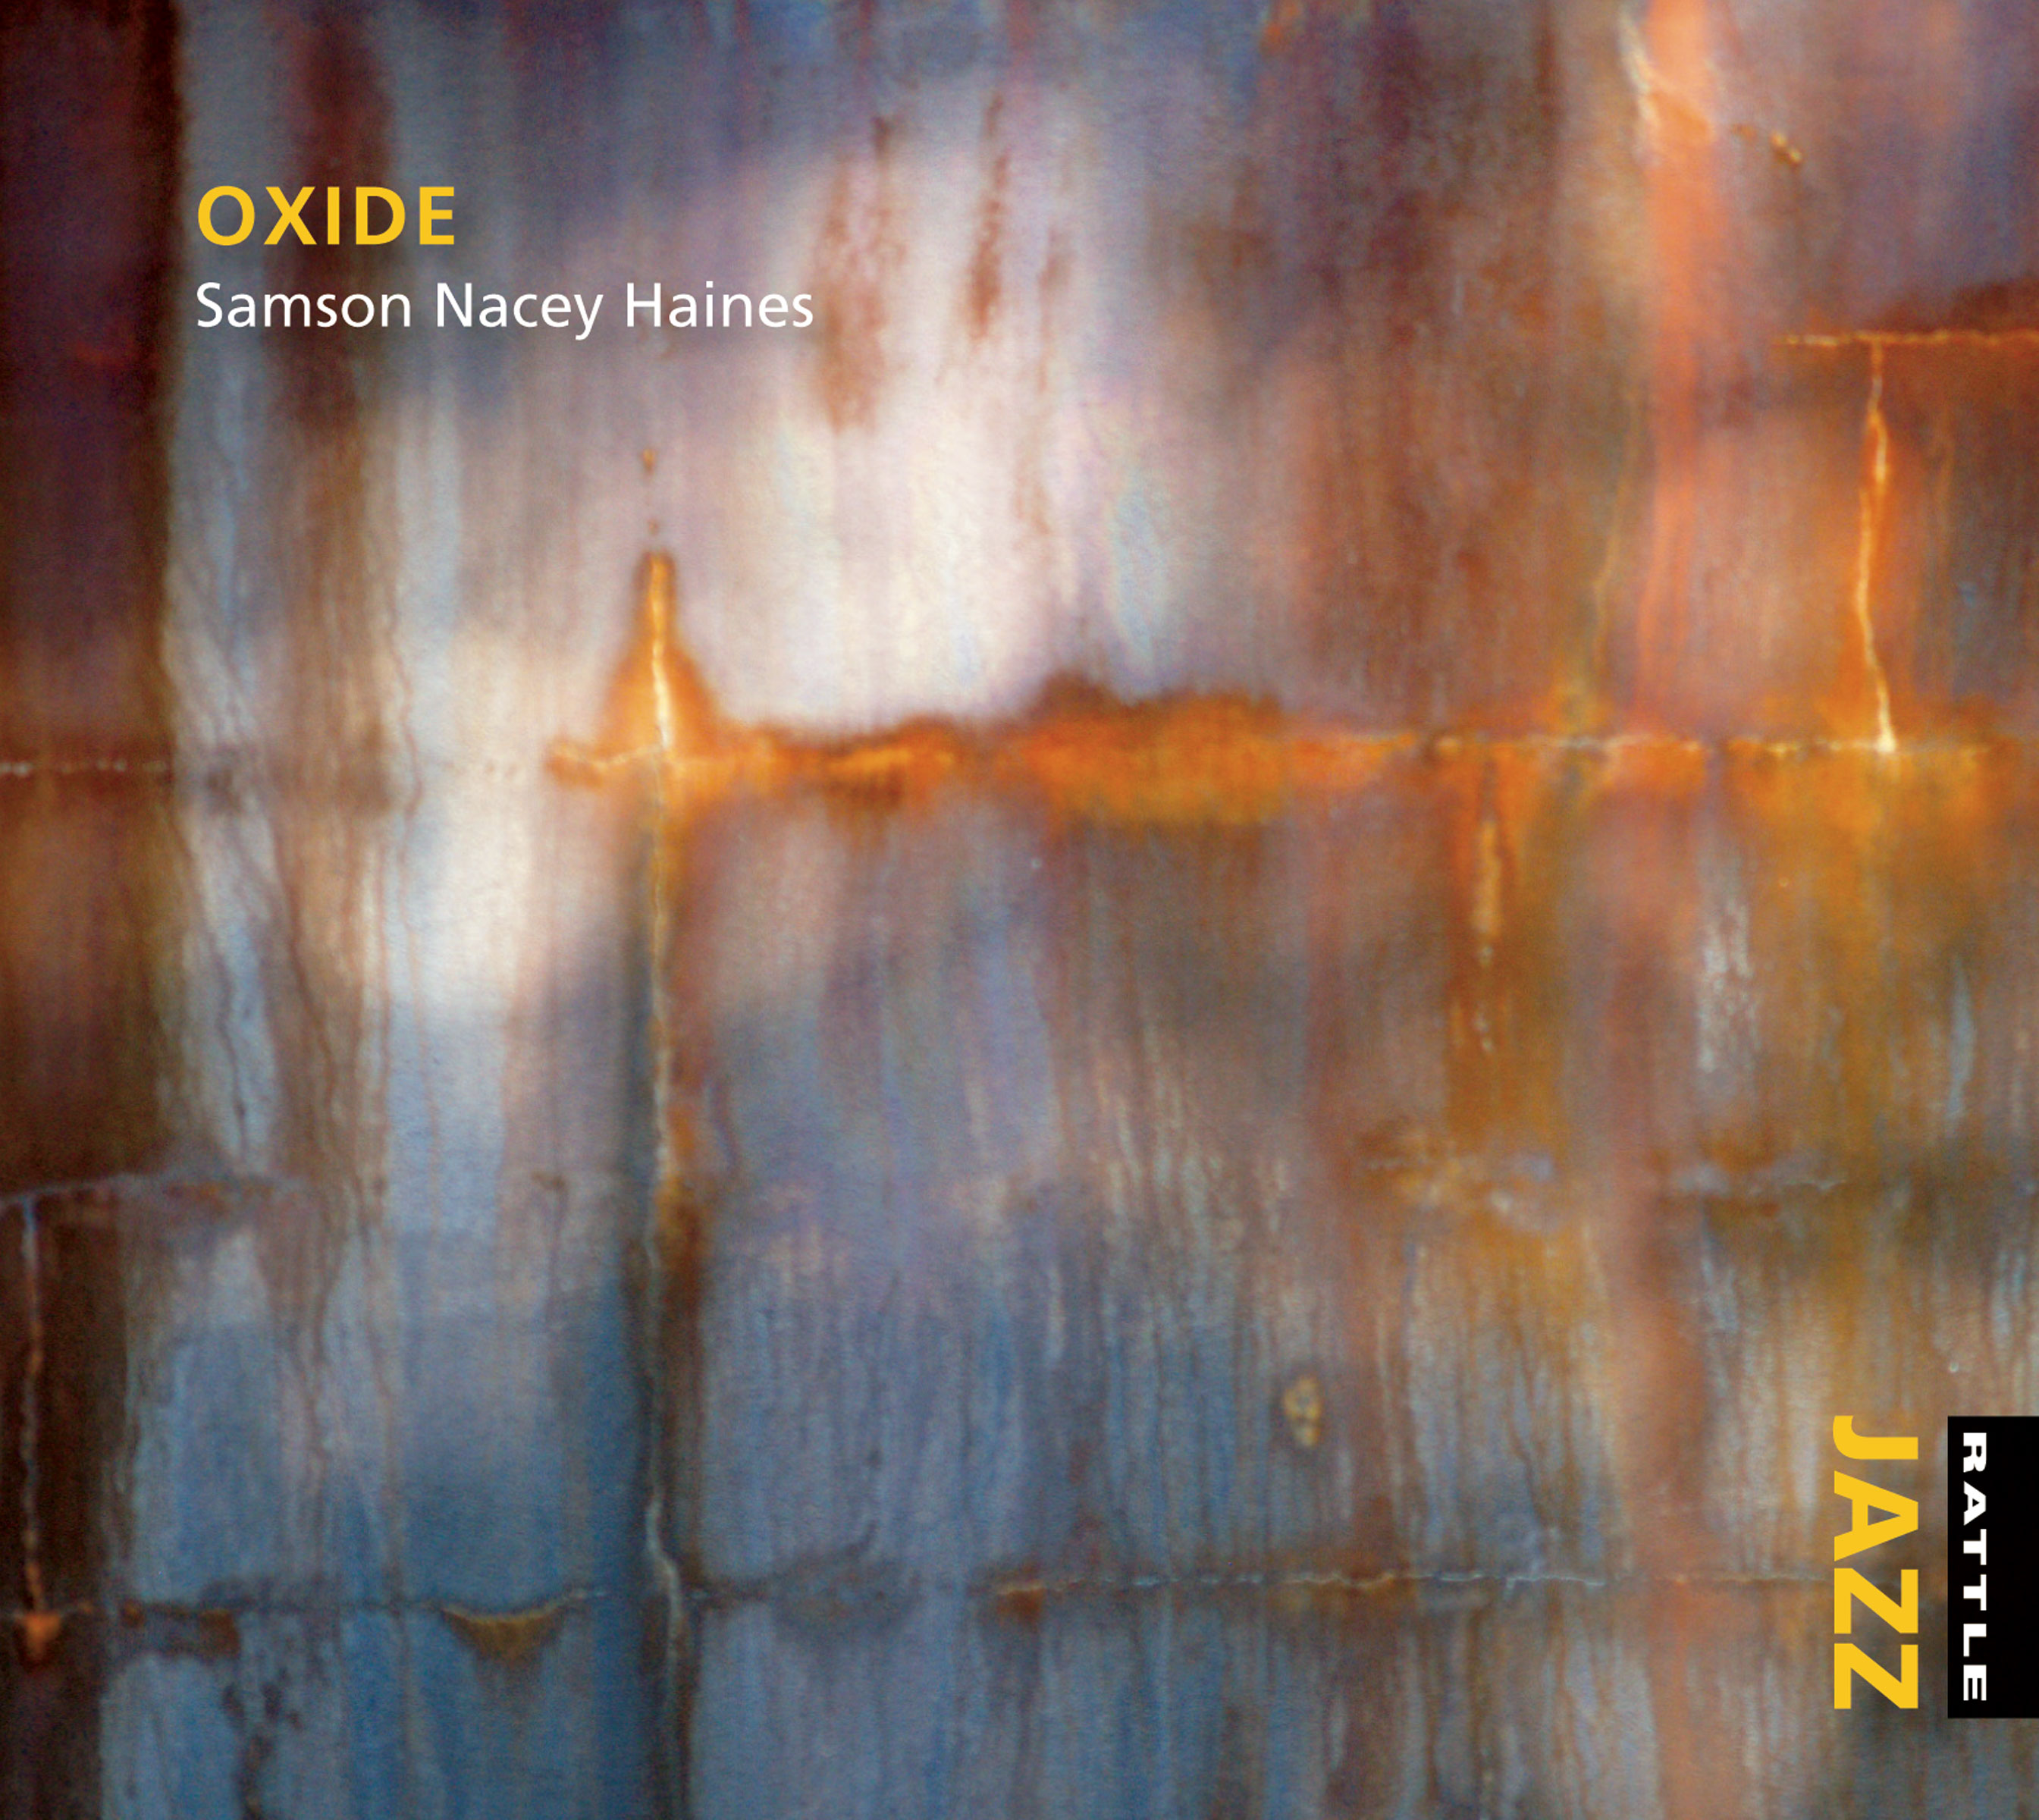 Samsom, Nacey, Haines | Oxide - downloadable MP3 ALBUM